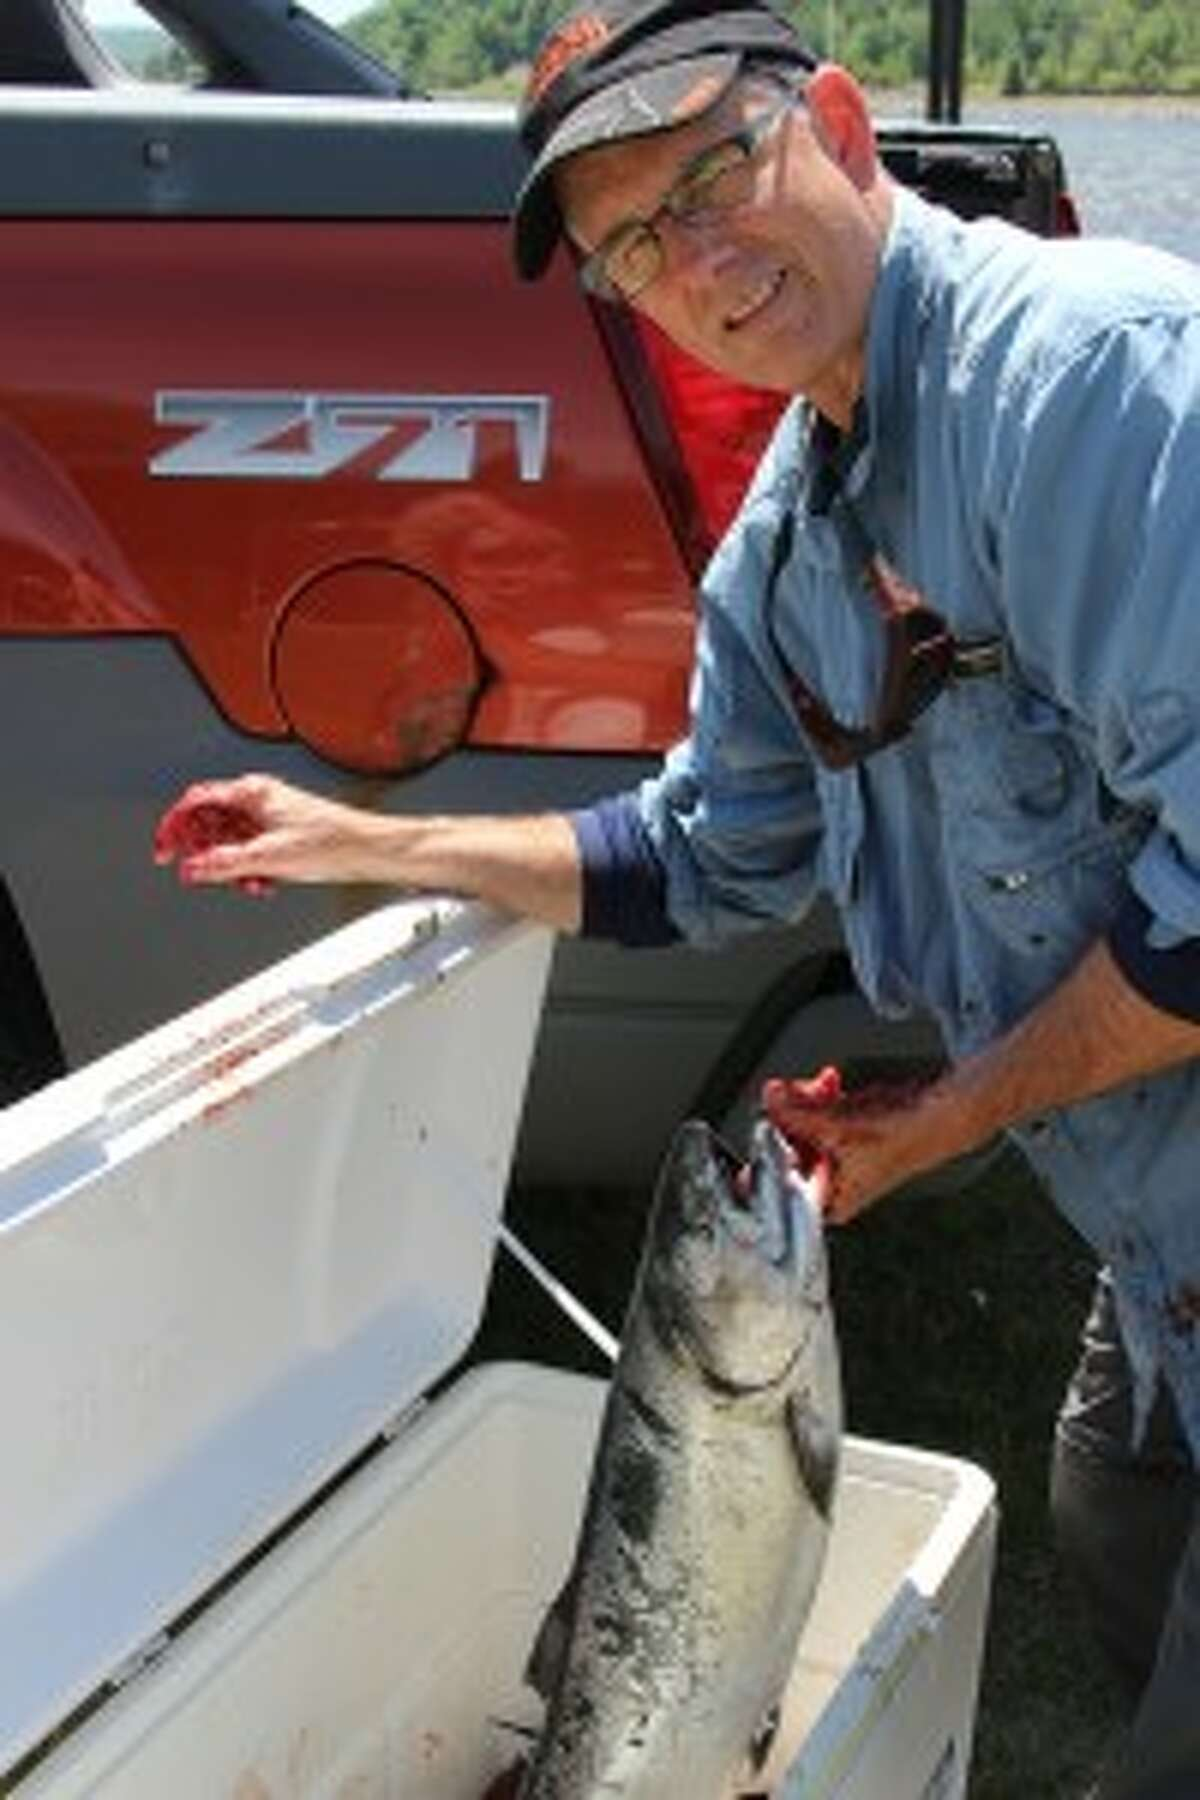 FILET OF FISH: Fred Fay pulls out a salmon to be fillet at the annual David Bihlman Memorial Fishing Tournament on Saturday. Proceeds went to Camp Quality, and caught fish were donated to hungry members of the community.